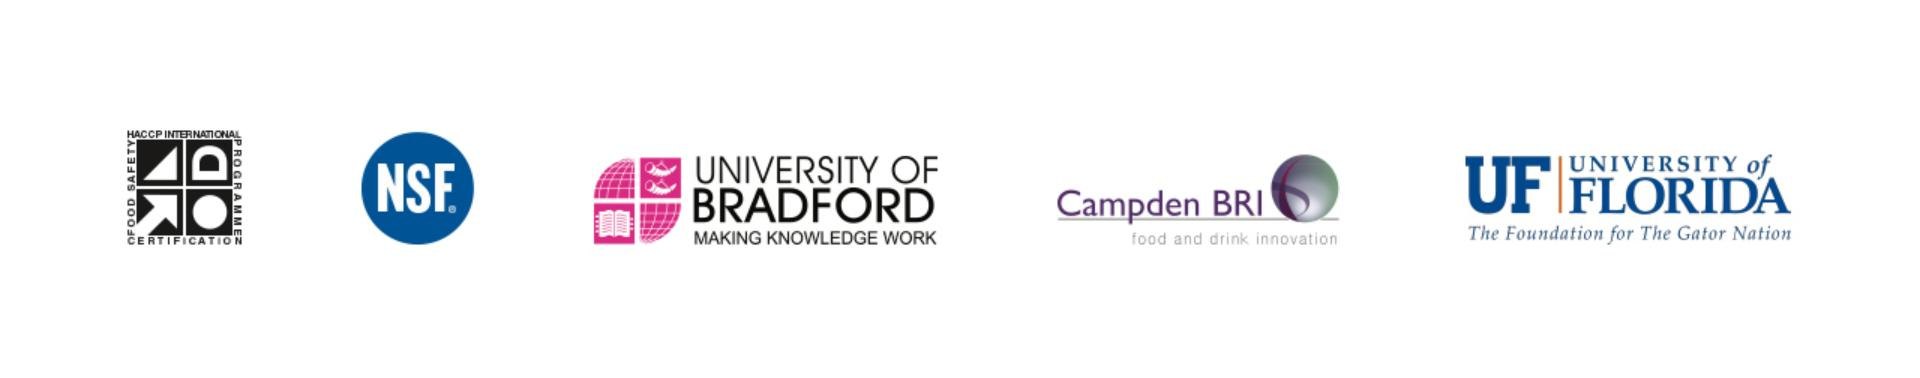 Logos of the HACCP and NSF certifications, University of Bradford, University of Florida and Campden BRI